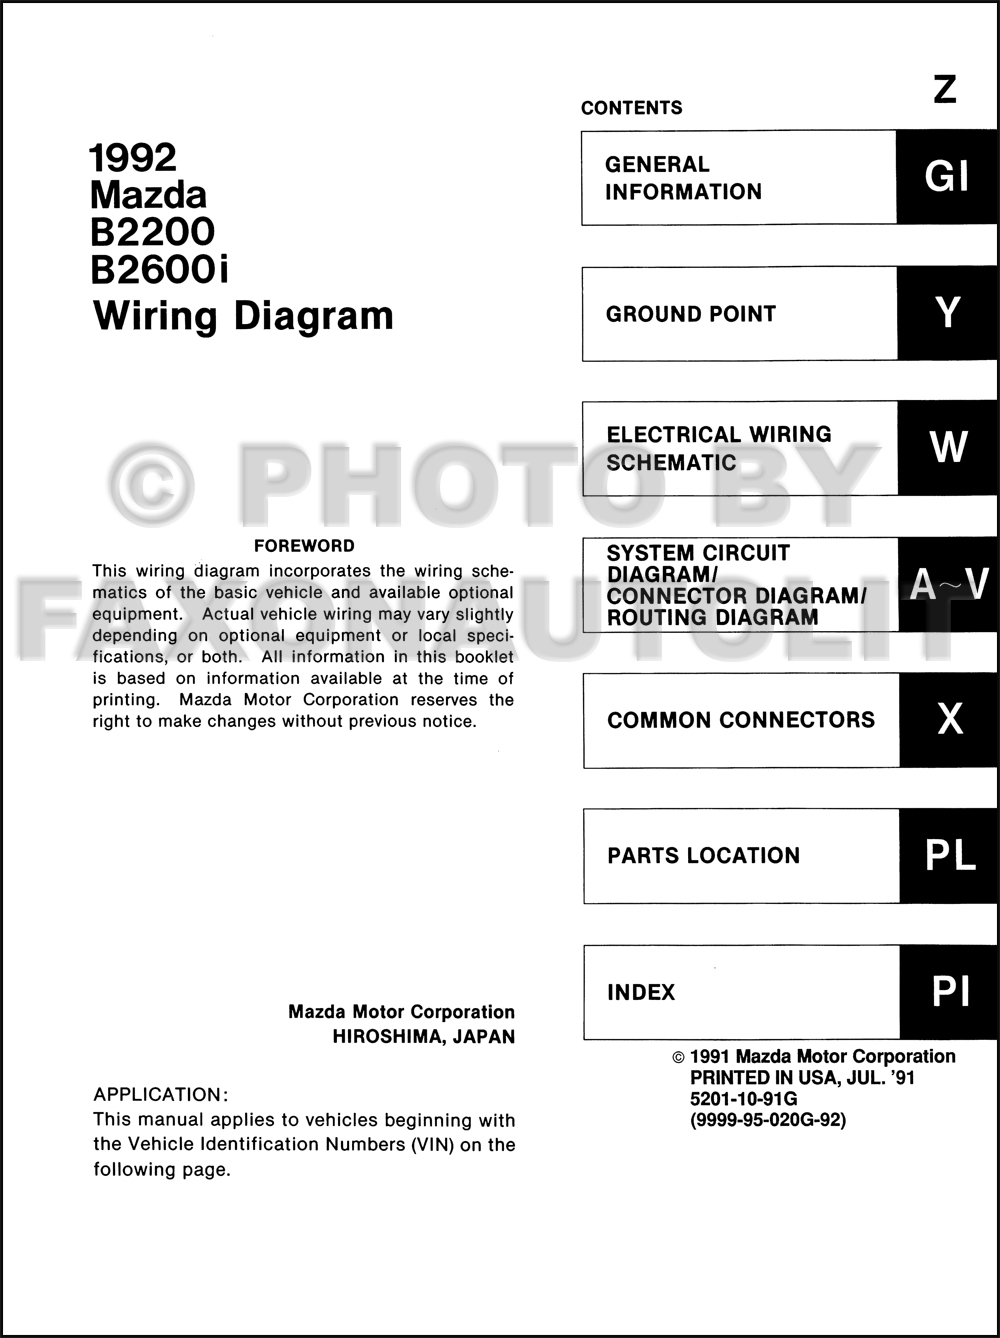 1992 mazda b2200 b2600i pickup truck wiring diagram manual original rh faxonautoliterature com mazda b2200 electrical wiring diagram mazda b2200 electrical wiring diagram